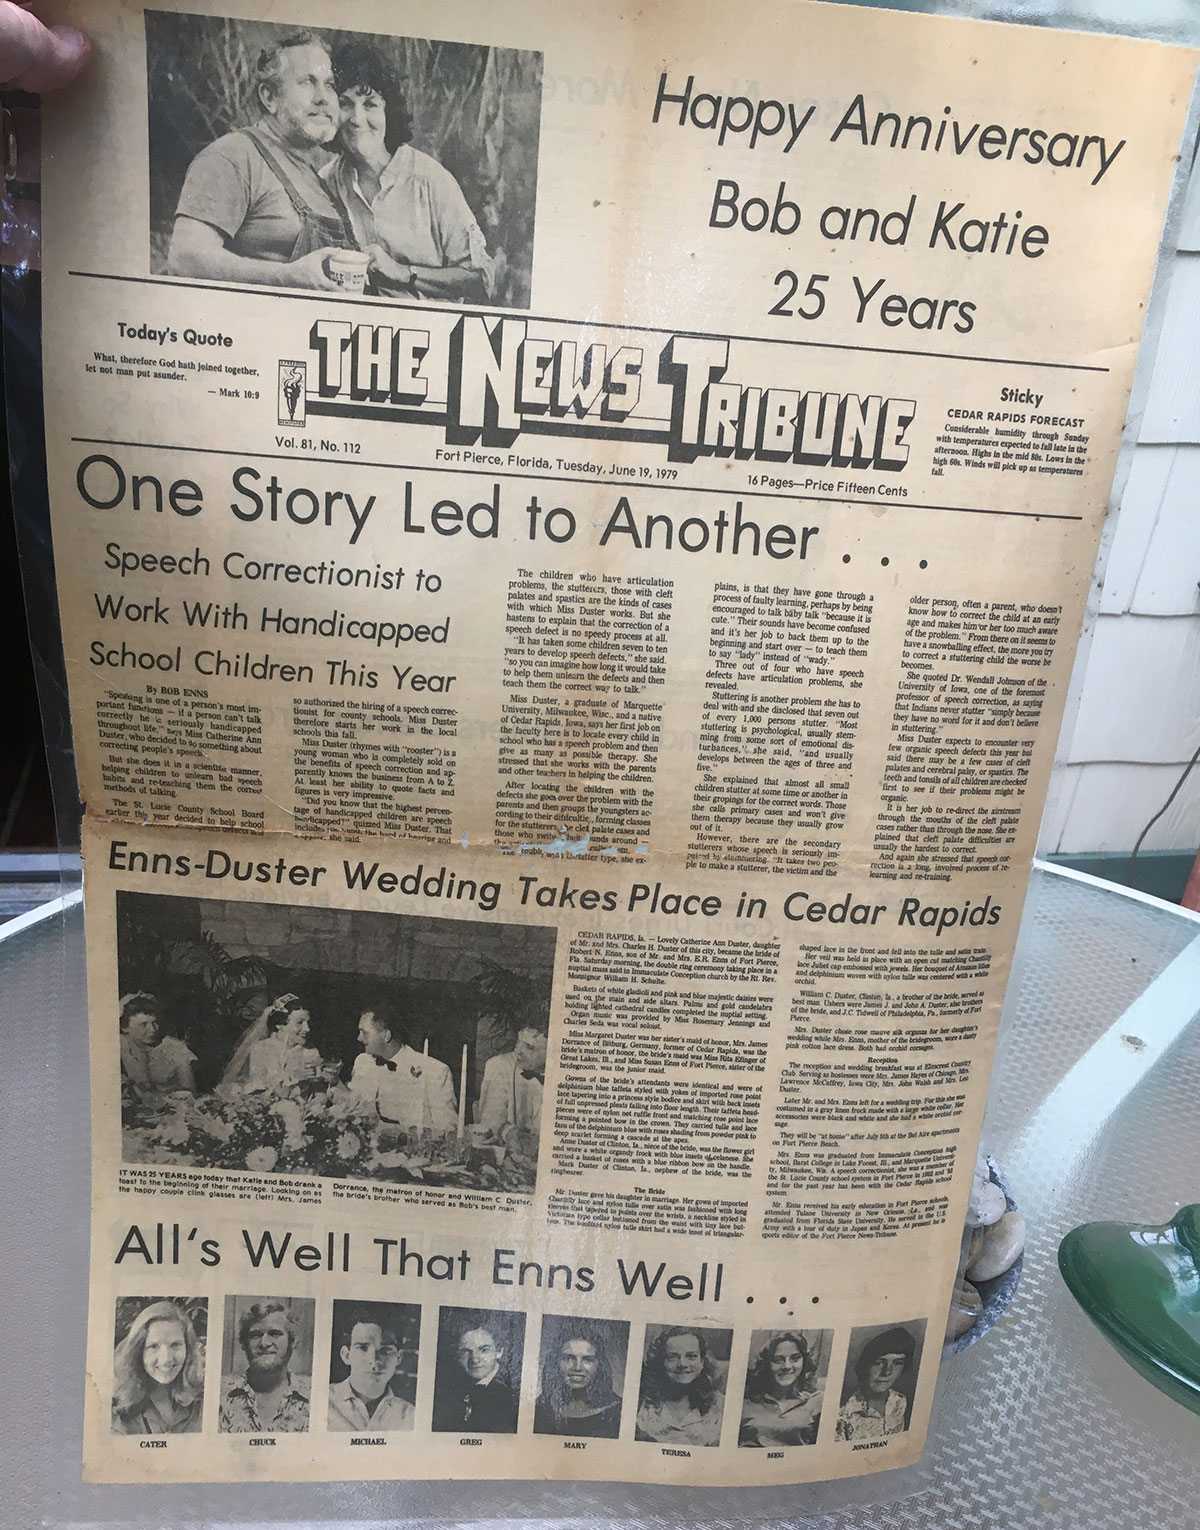 The News-Tribune created this special edition for Bob and Katie Enns